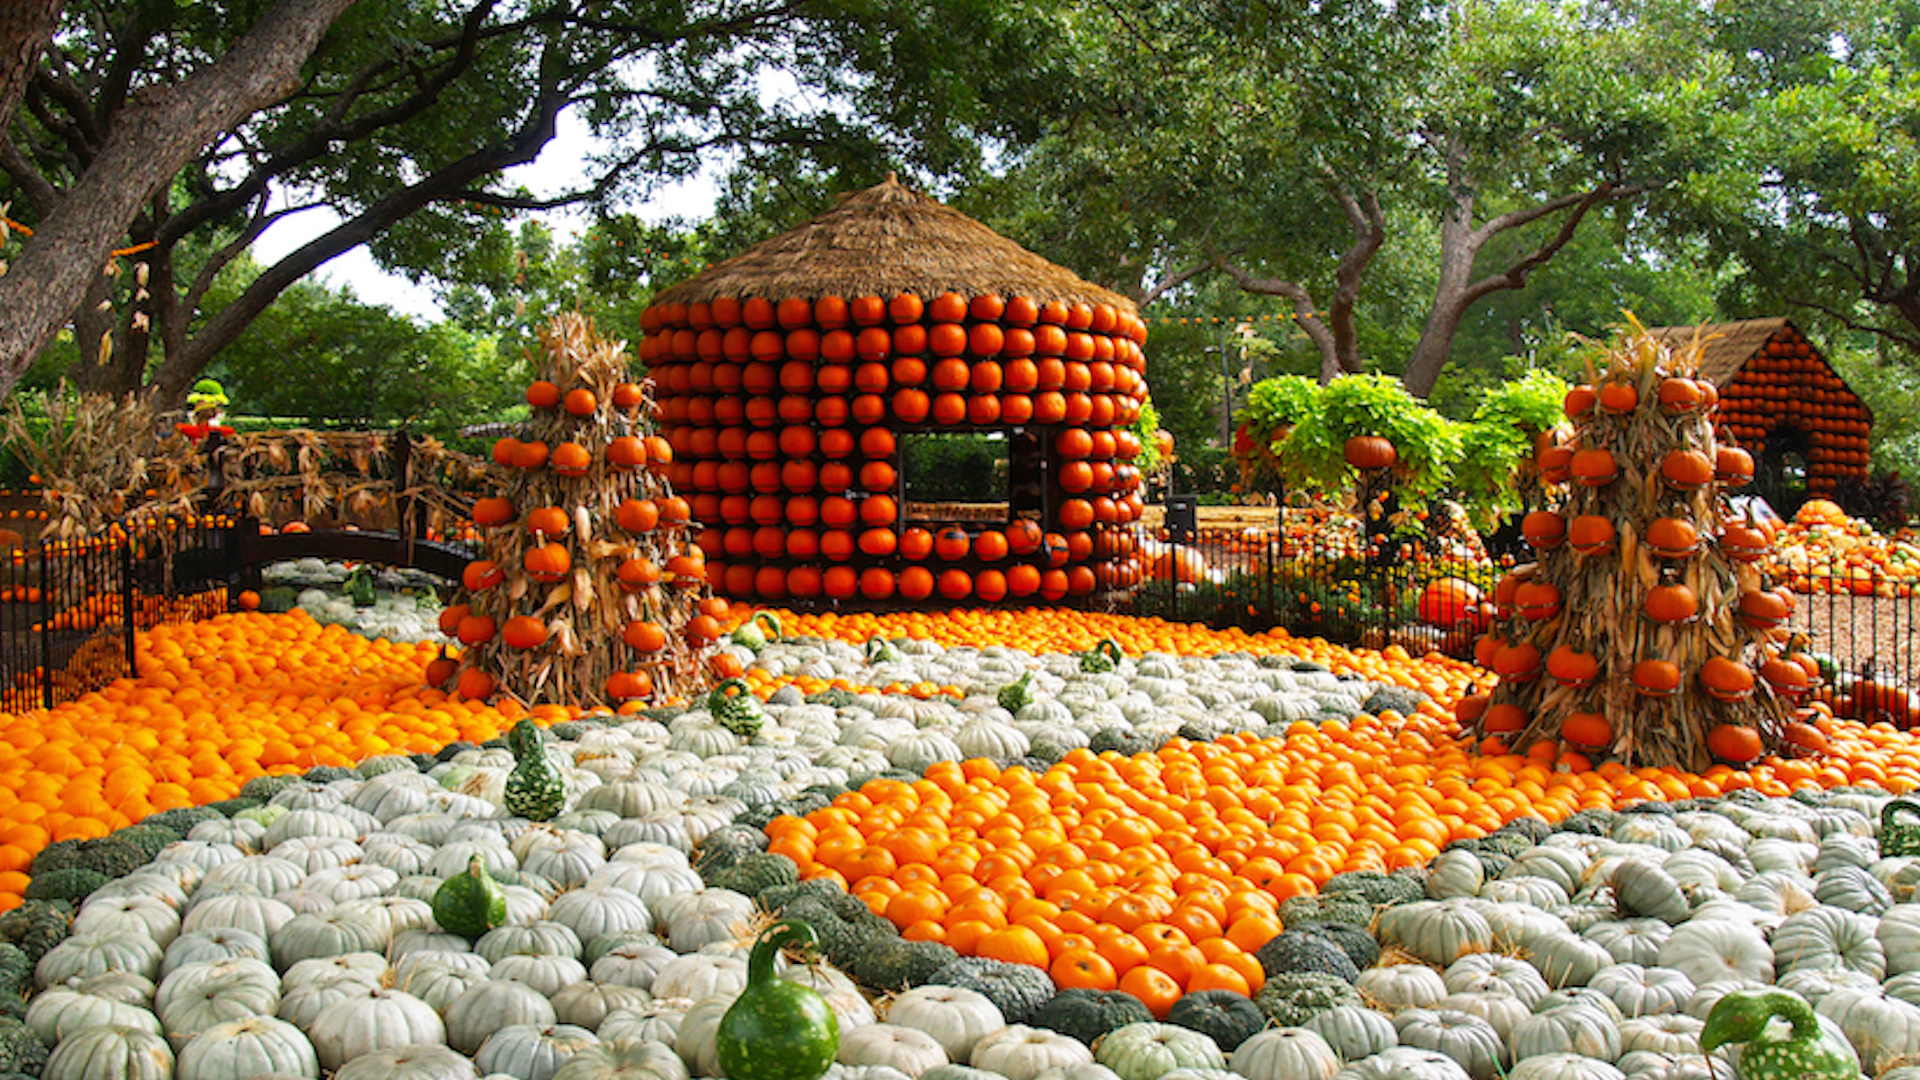 This Pumpkin Village in Dallas Looks Absolutely Incredible